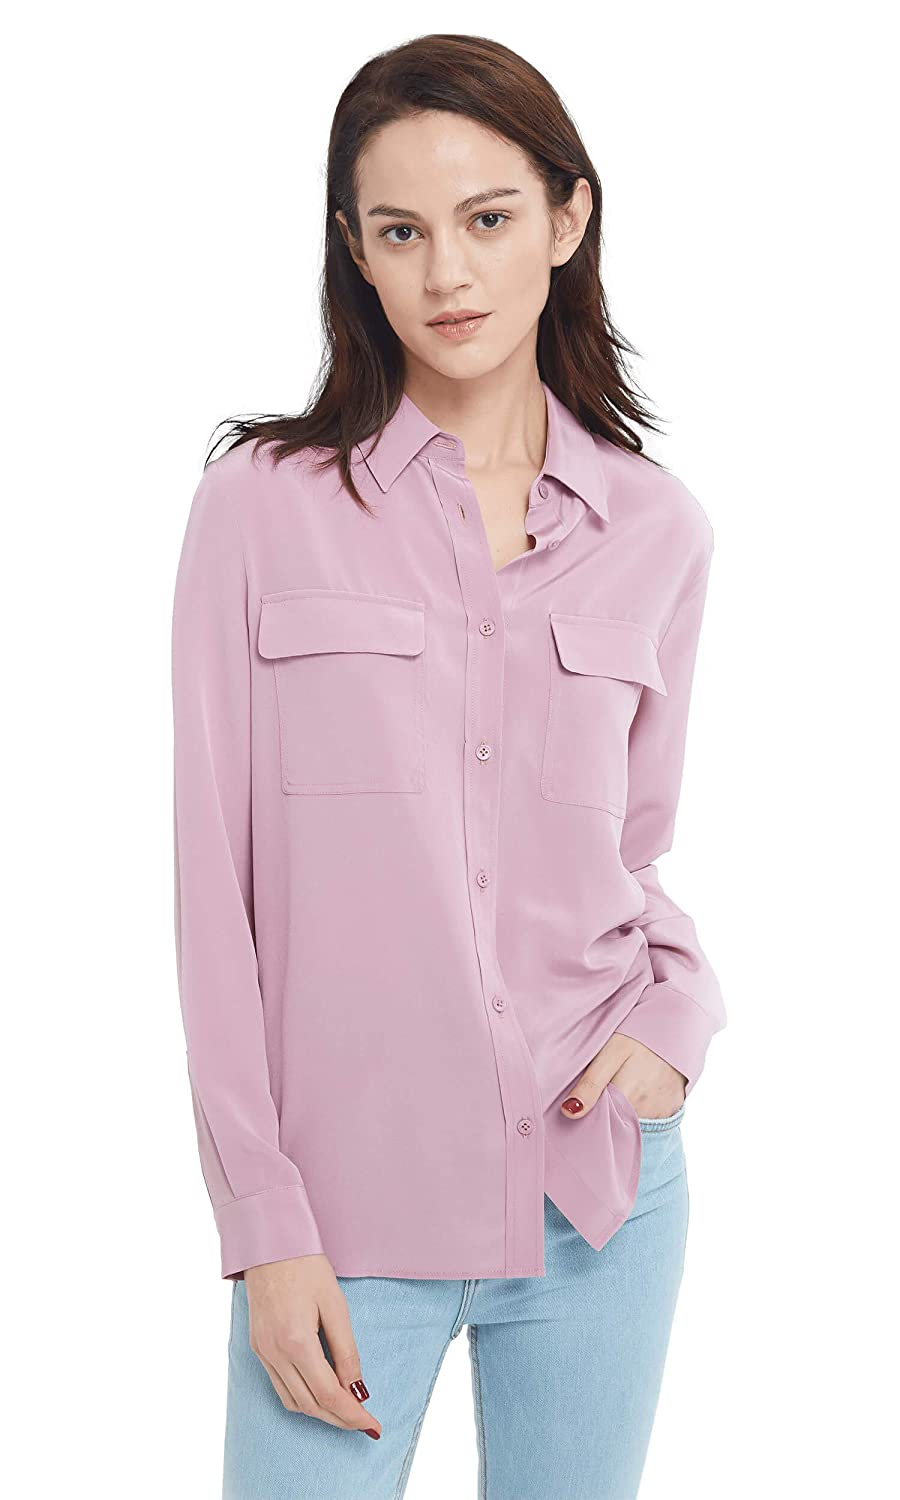 Pale purplec LilySilk Women's Silk Shirt 18 Momme Long Sleeves 100% Pure Silk Blouse Tops